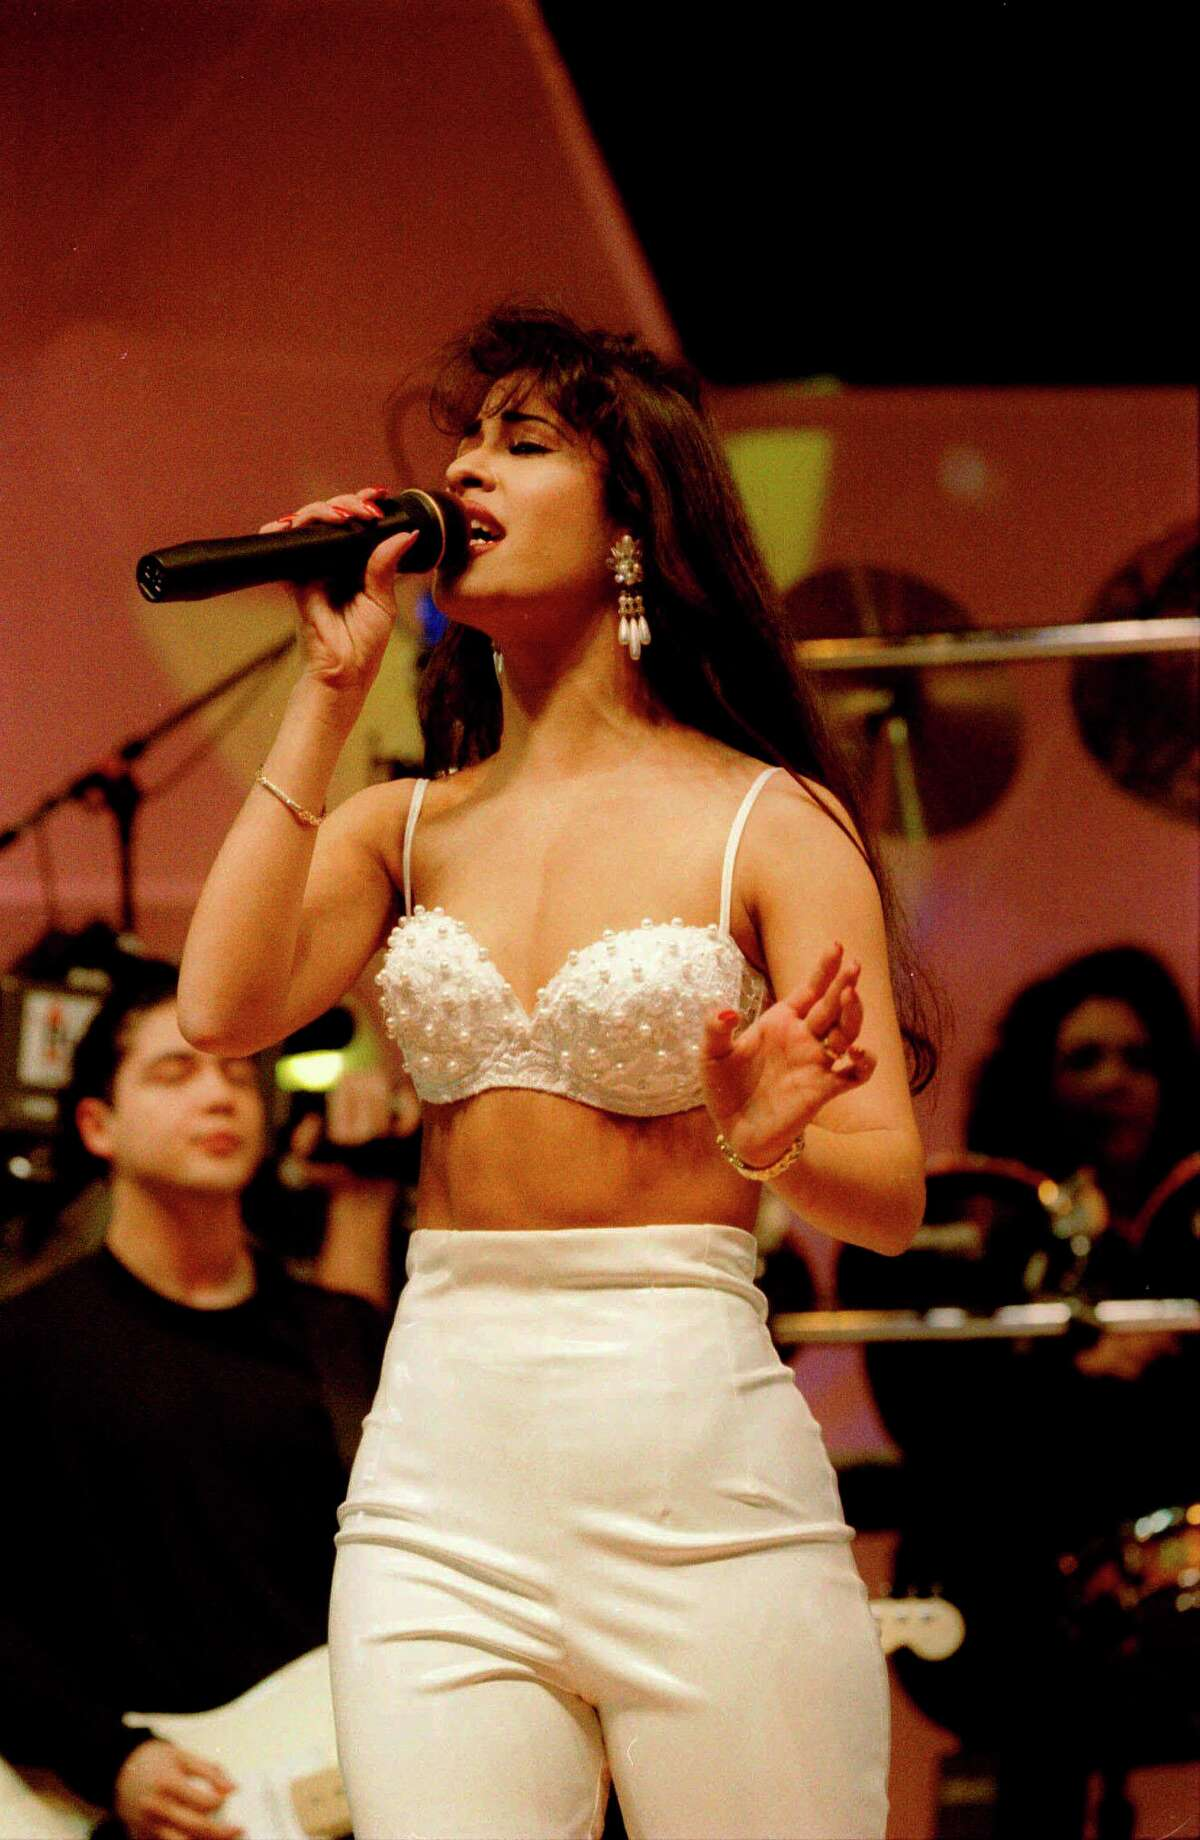 Selena performs at the Houston Livestock Show and Rodeo in 1994. Photo courtesy the Houston Chronicle.